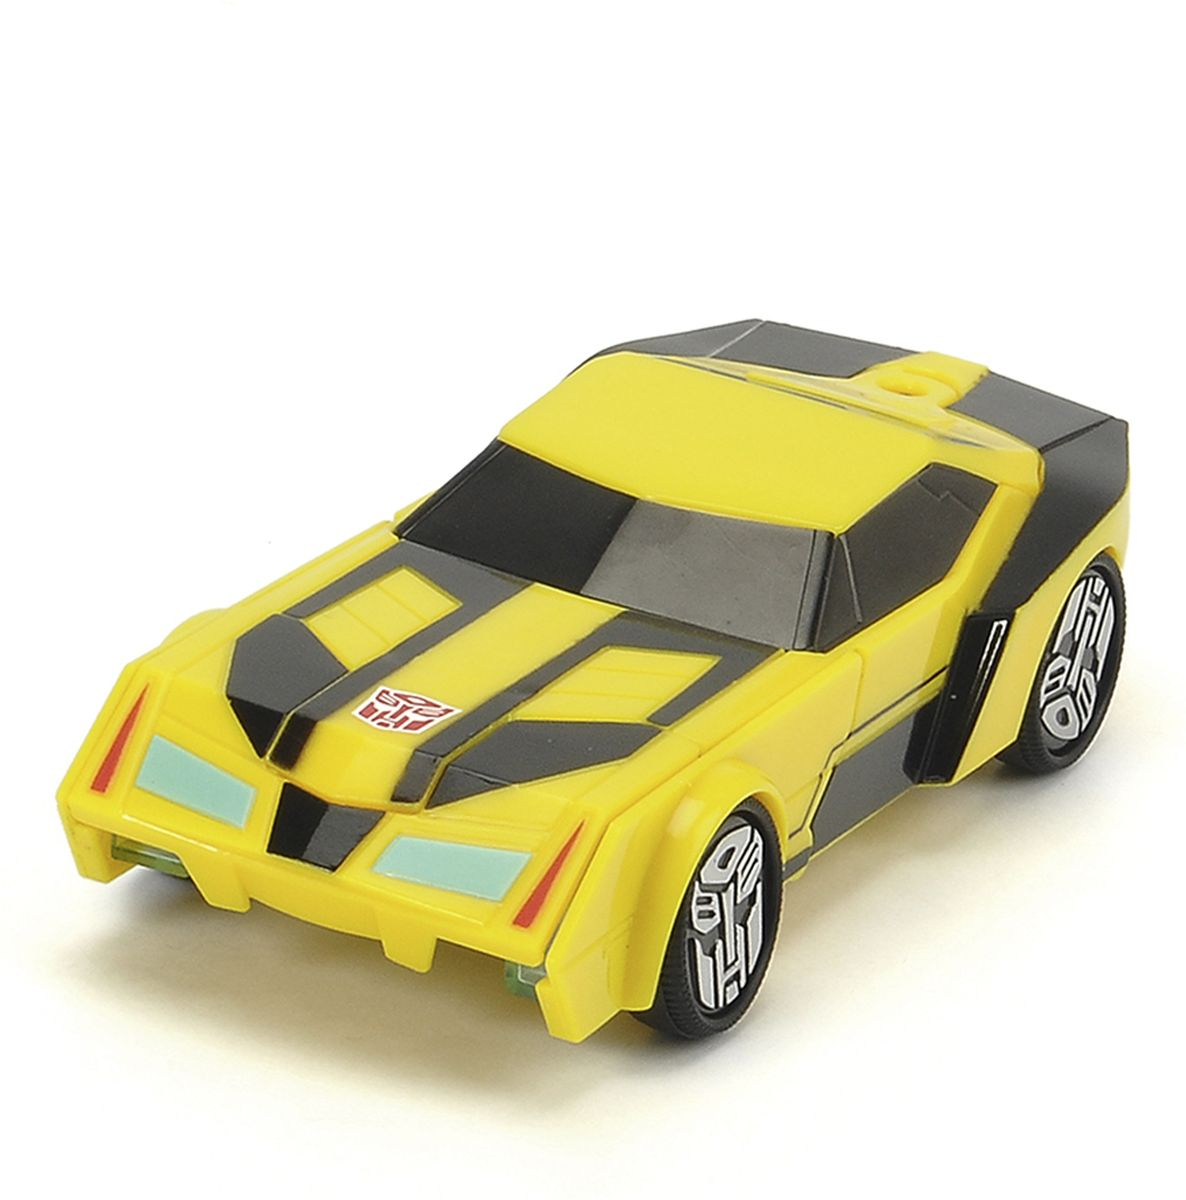 Dickie Toys Машинка-трансформер Bumblebee dickie toys машинка bumblebee tin box